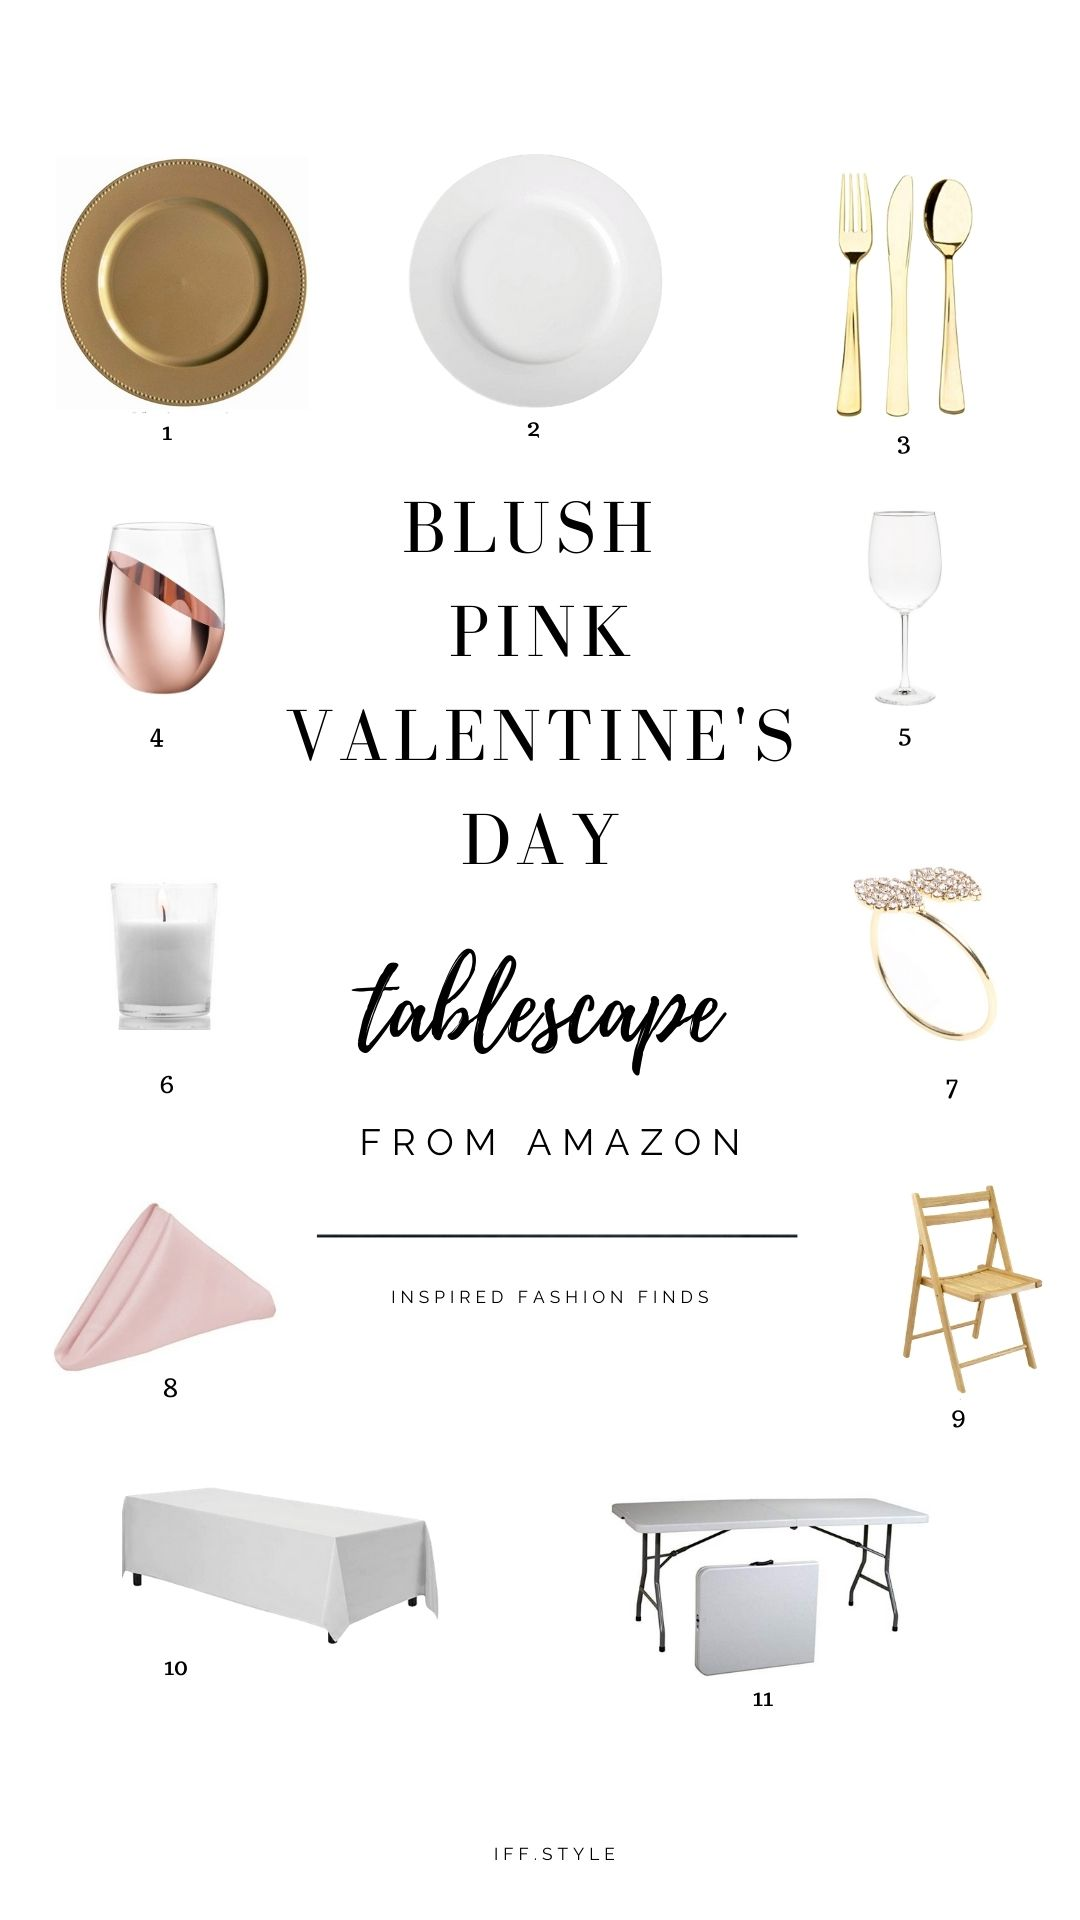 Pinterest Pin-Valentine Blush Pink tablescape